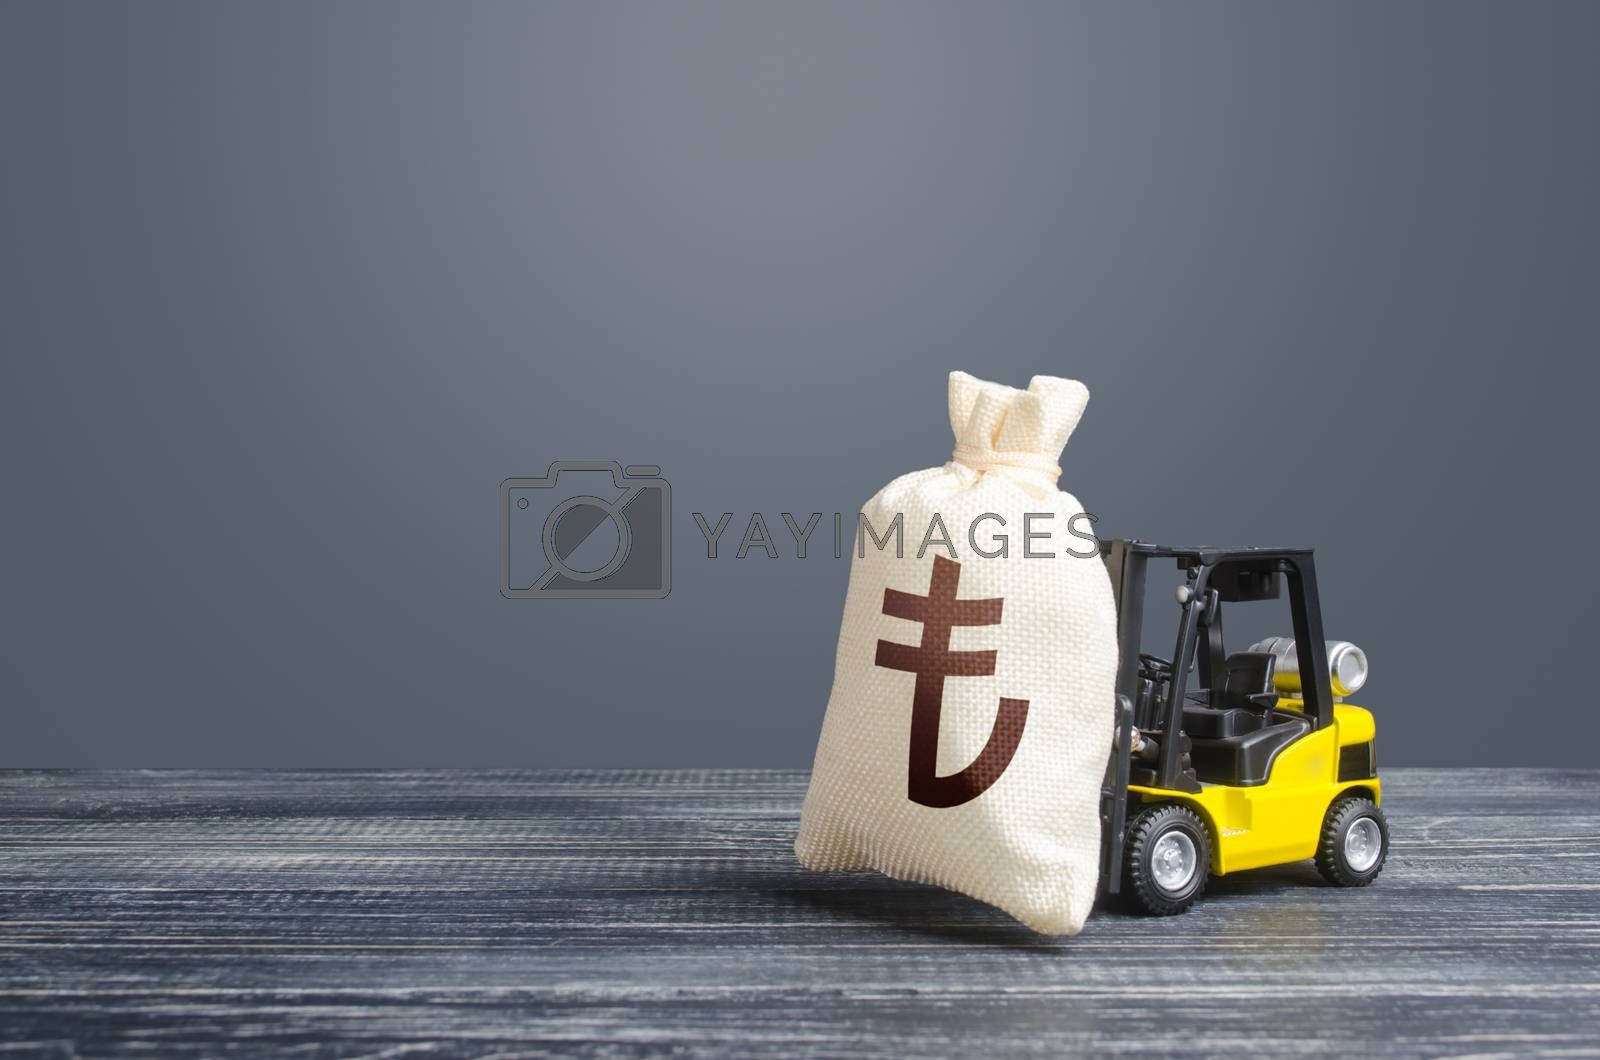 Forklift transports a turkish lira money bag. Attraction of large investments in business and economy, cheap loans, leasing. Borrowing on capital market. Stimulating economy. Crisis recovery measures